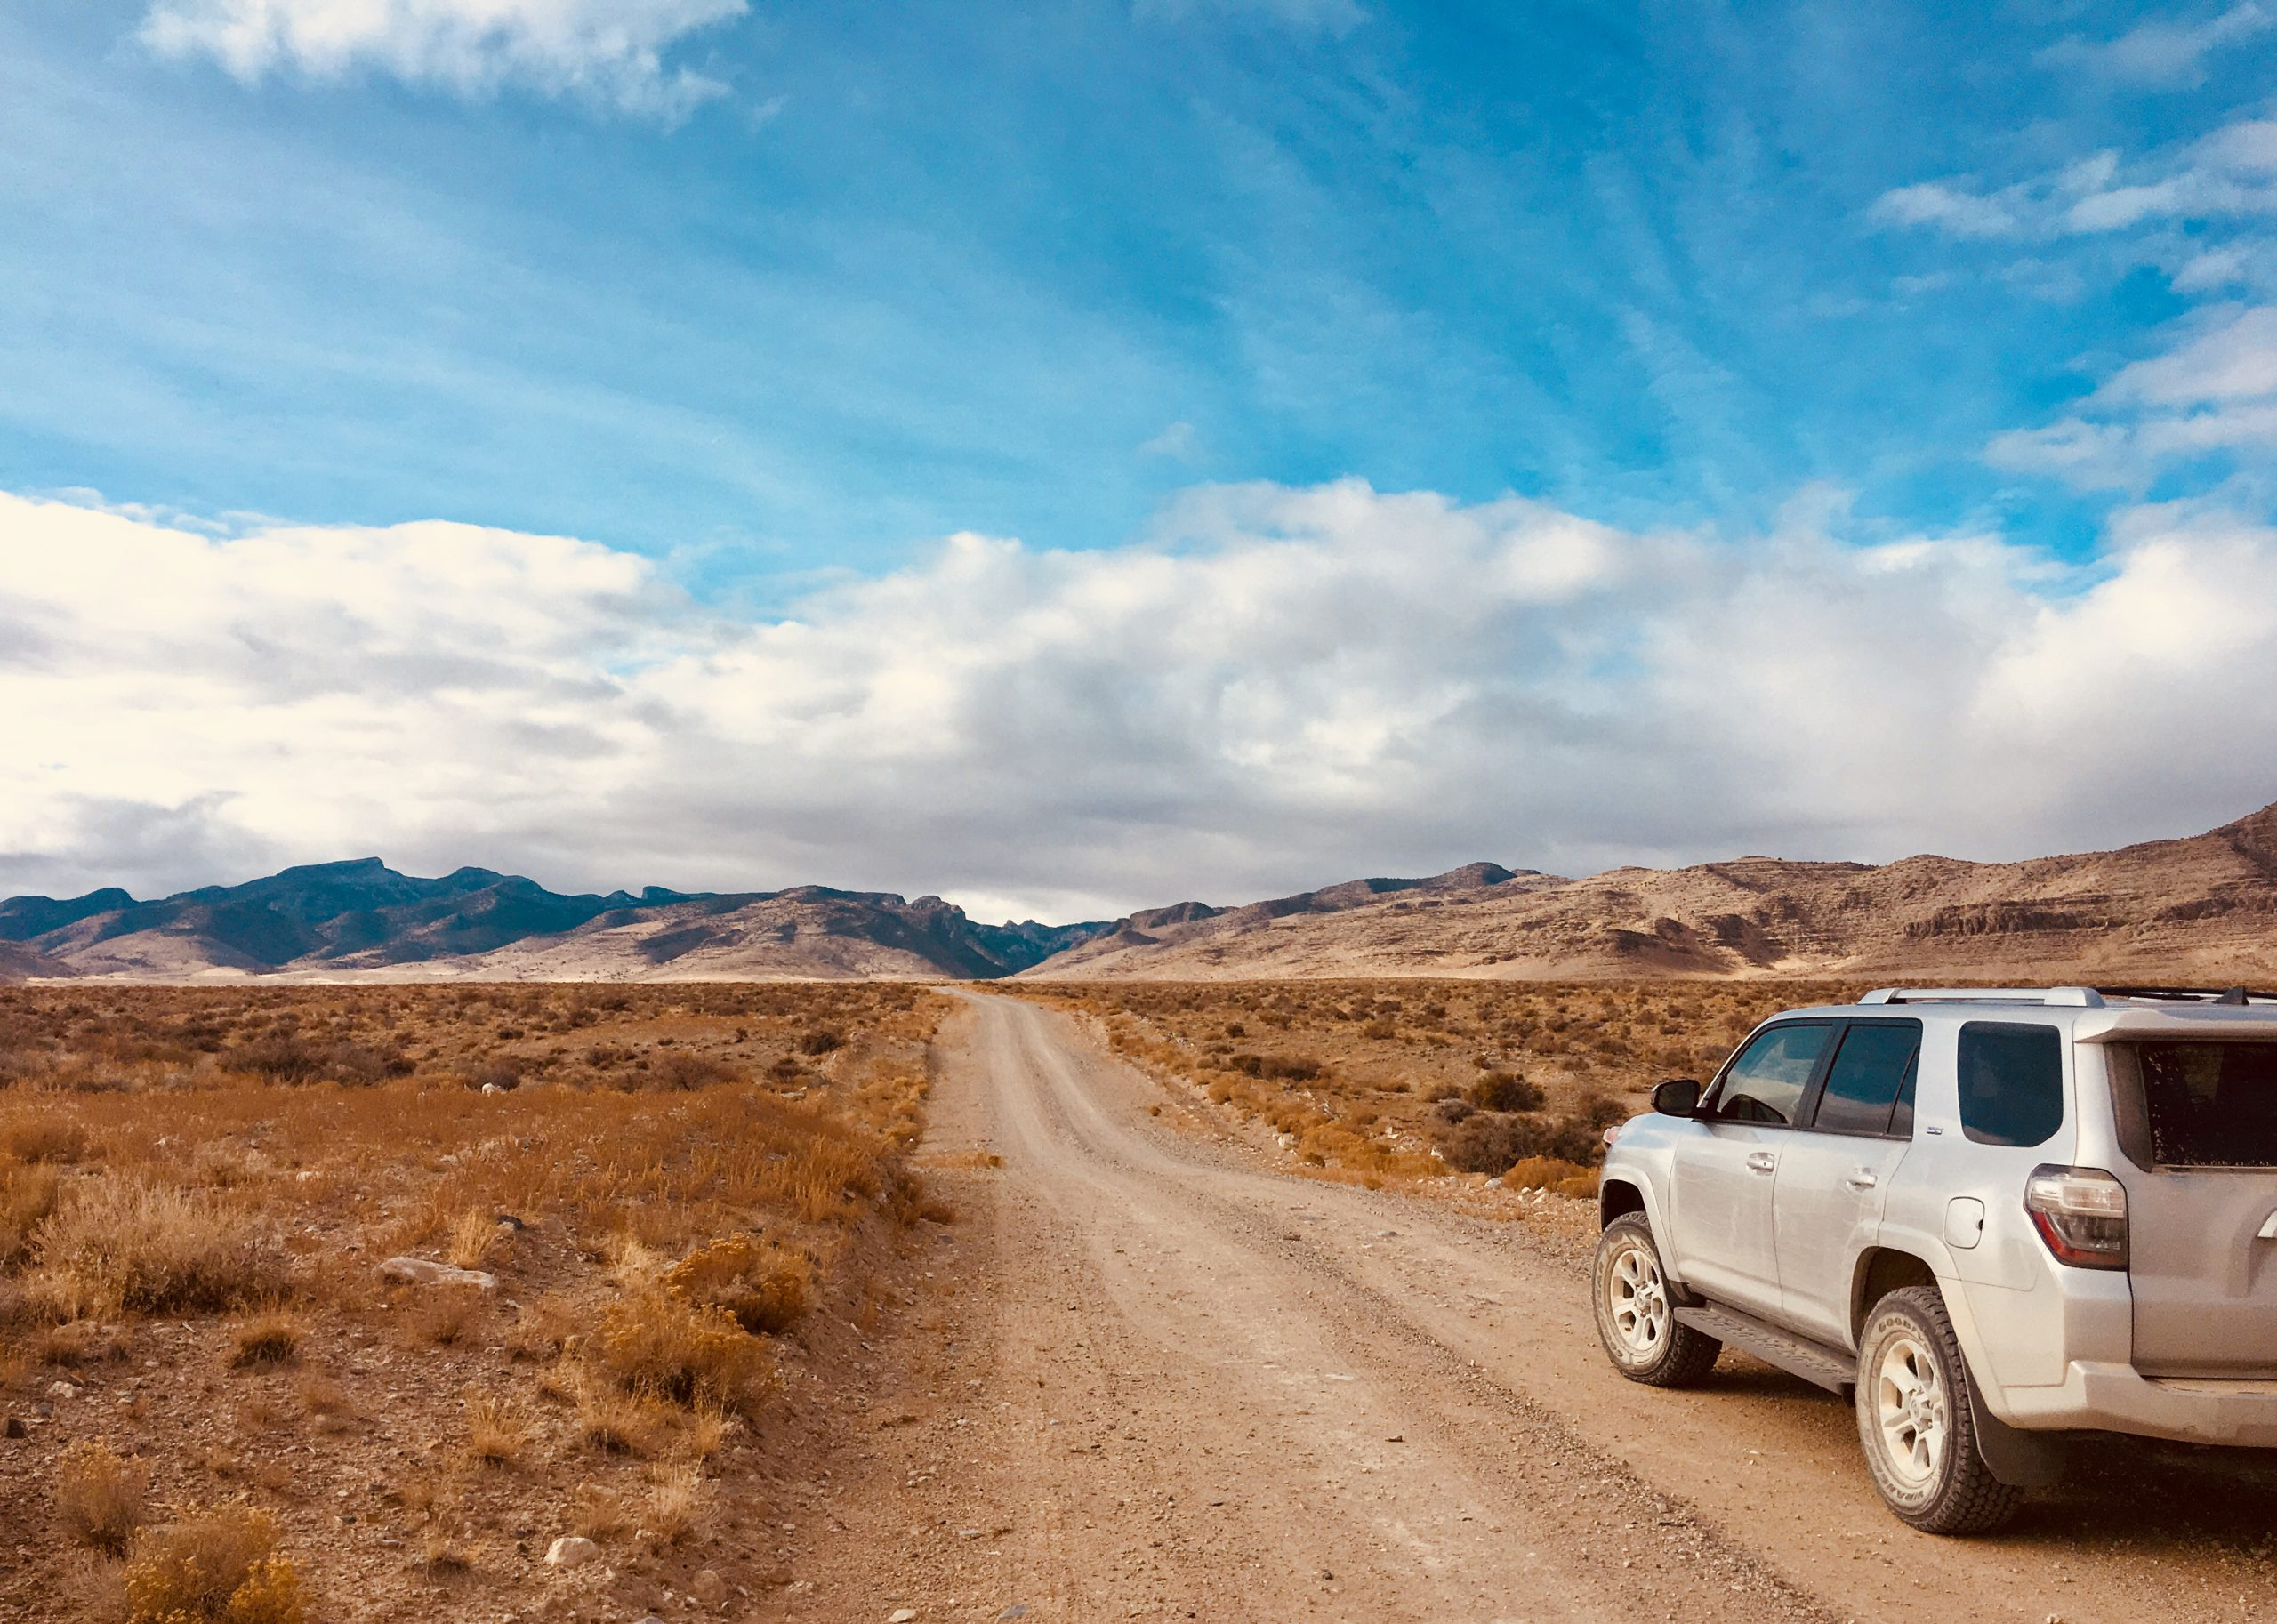 Utah's Access Map 360° web application highlights roads that provide access to Utah's public lands